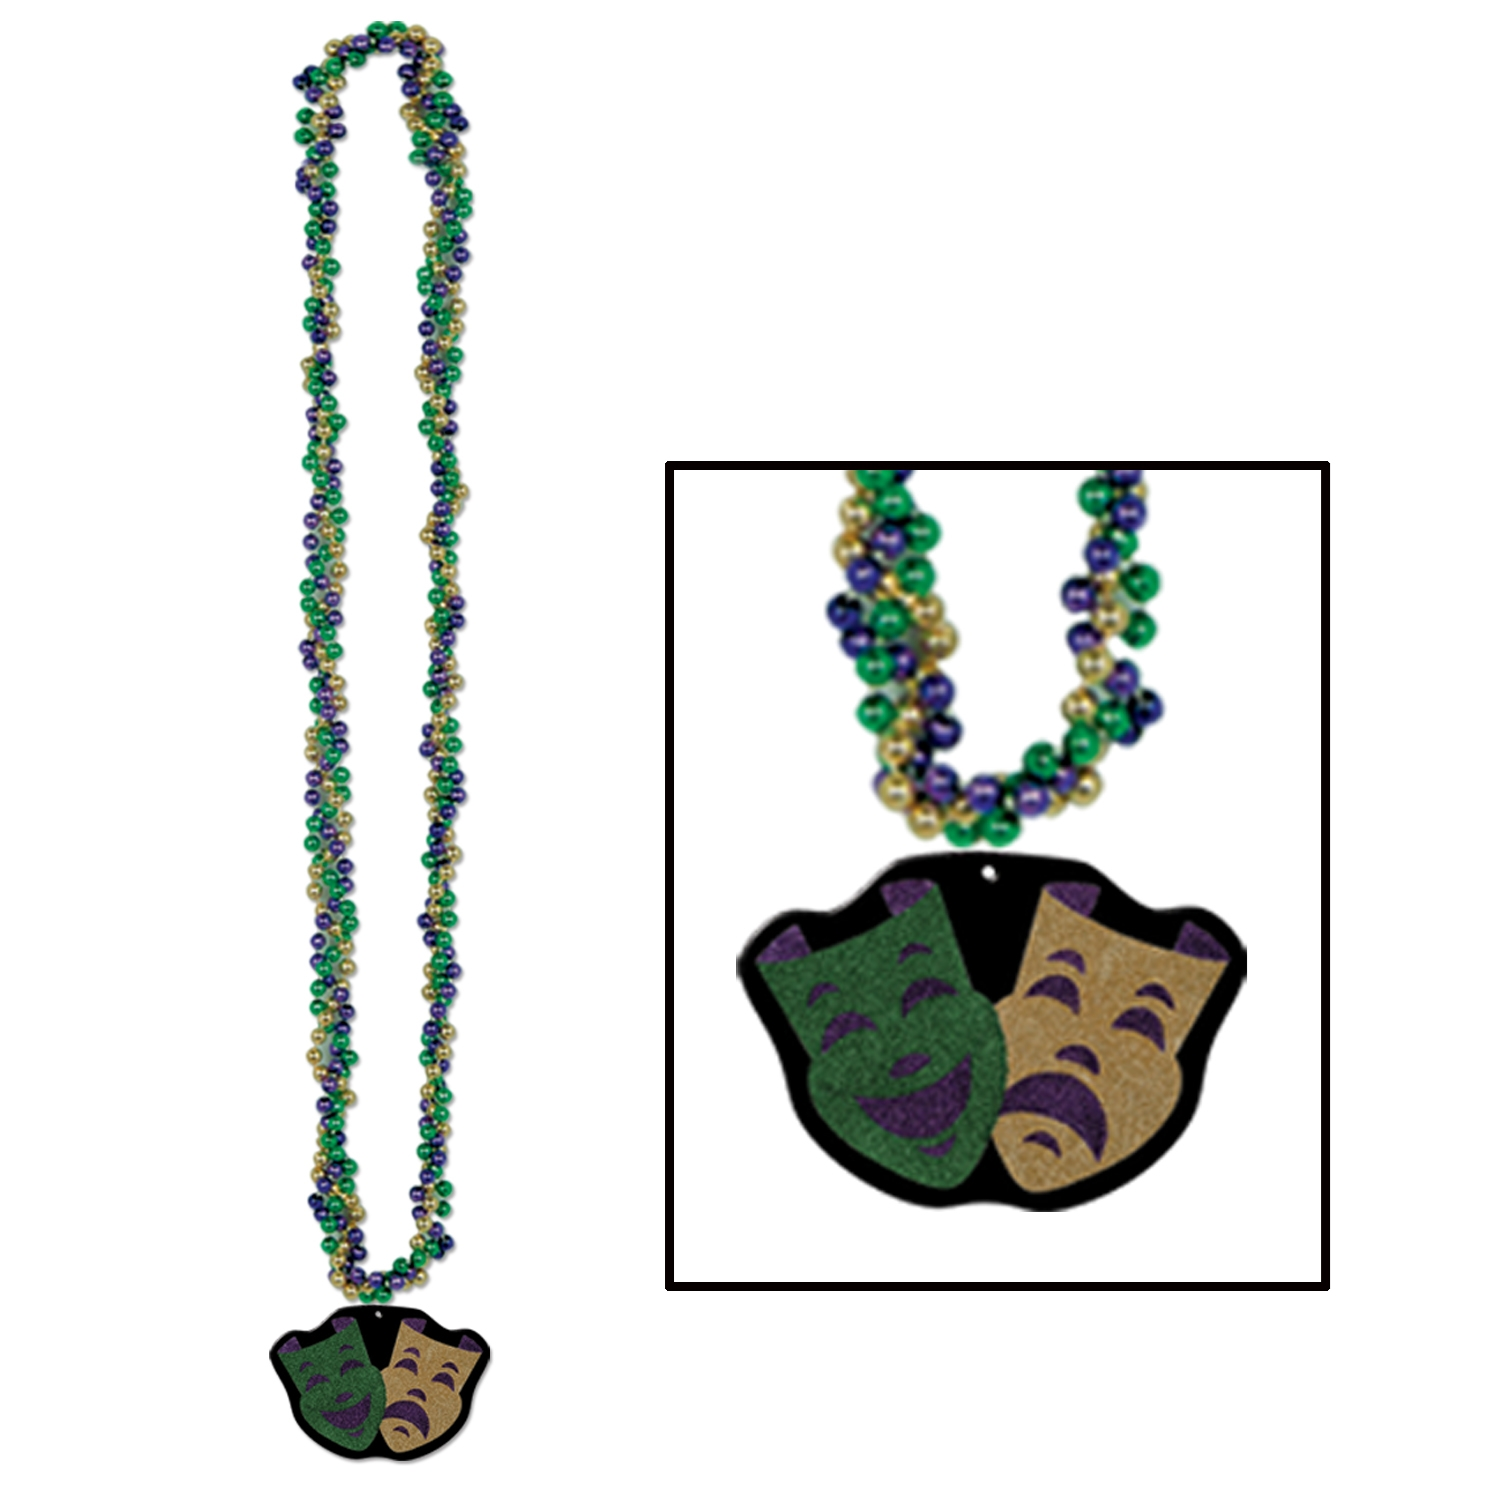 Braided Beads w/Comedy & Tragedy Medal (Pack of 12) Mardi Gras, Beads, Comedy, Tradedy, Medallion, medal, neckalce